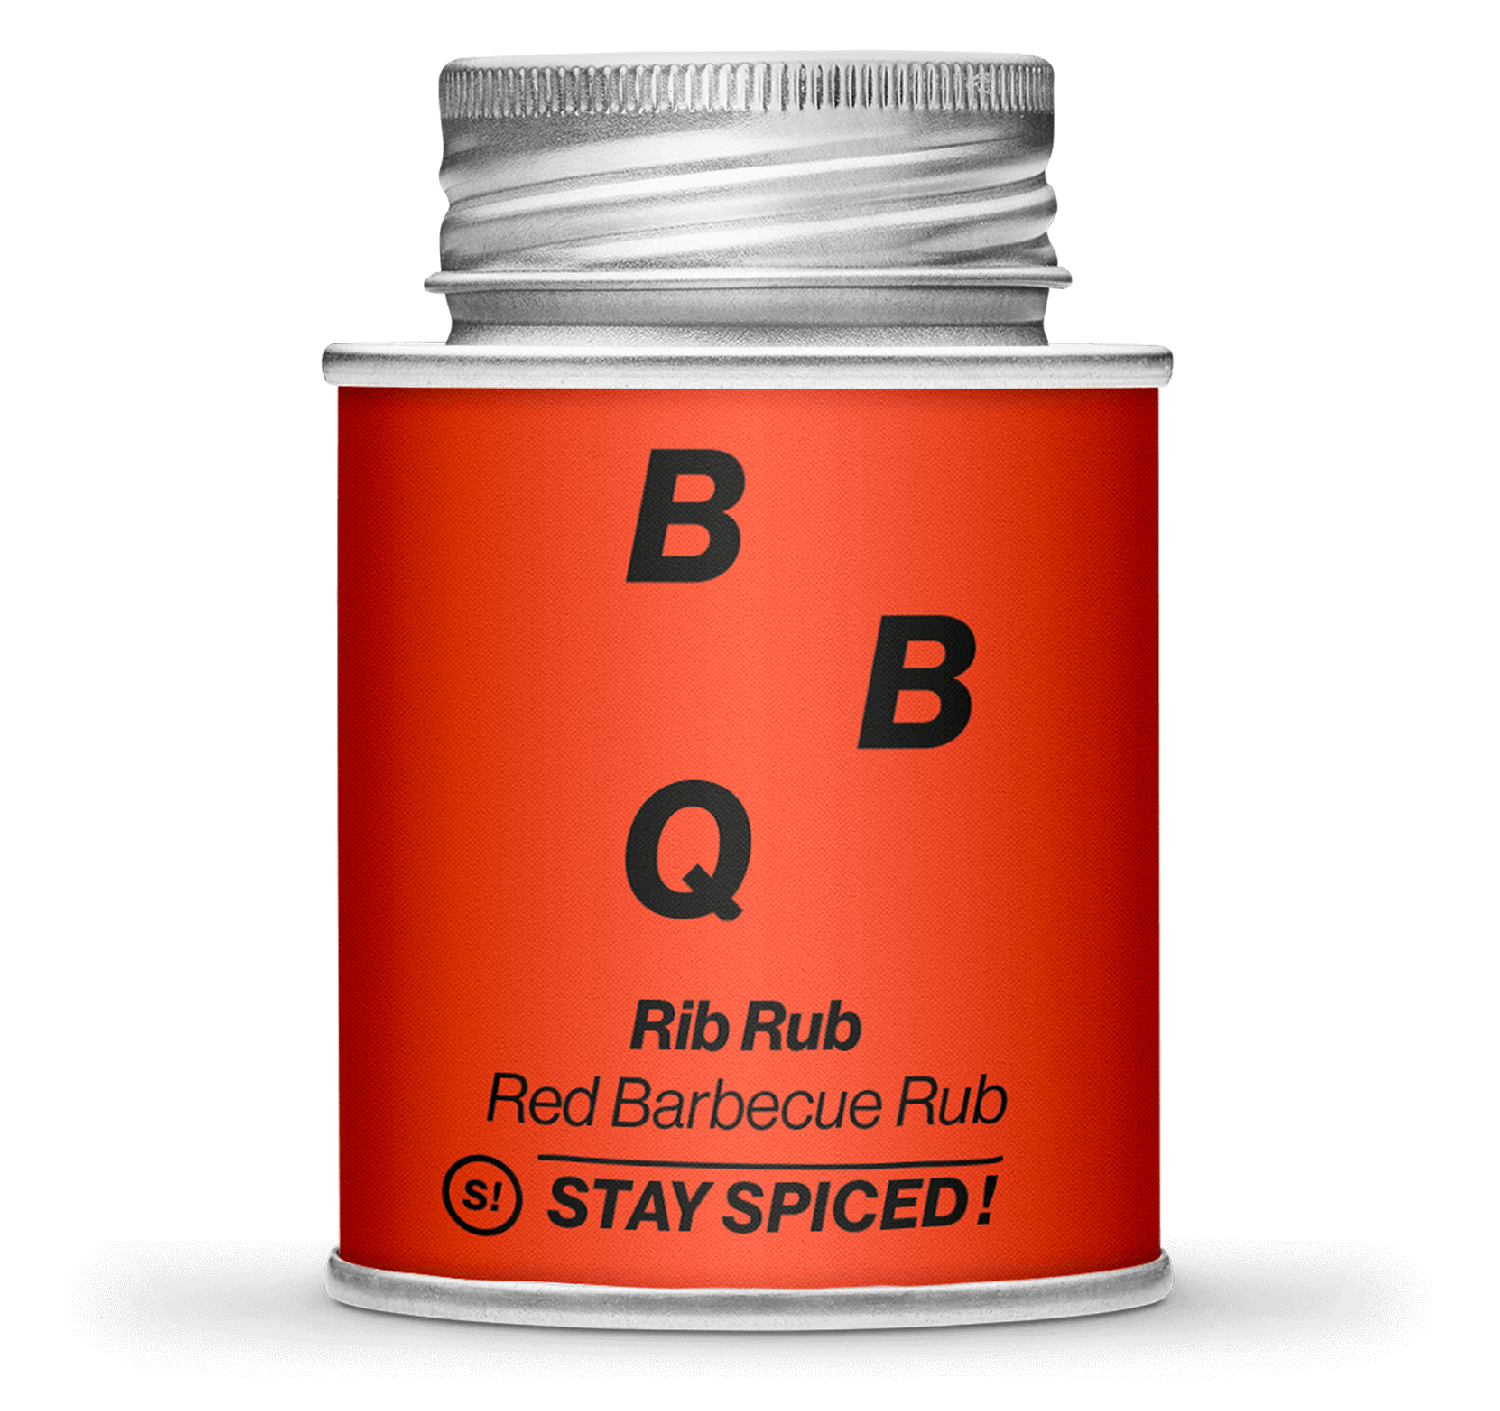 Rib Rub - Red Barbecue Rub